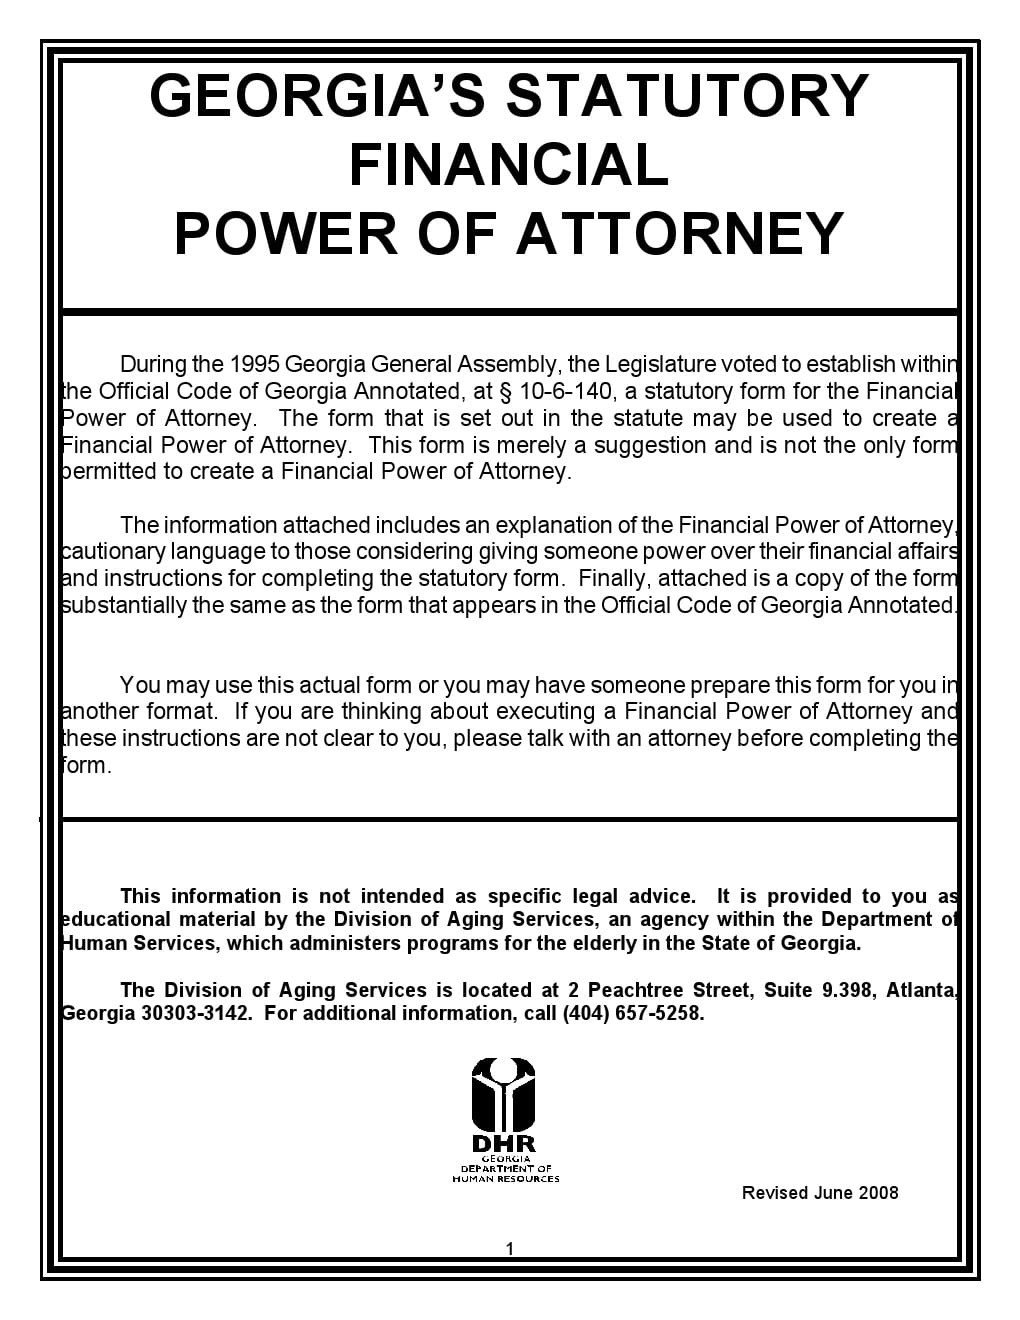 Free georgia power of attorney forms adobe pdf word statutory fiancial power of attorney georgia falaconquin